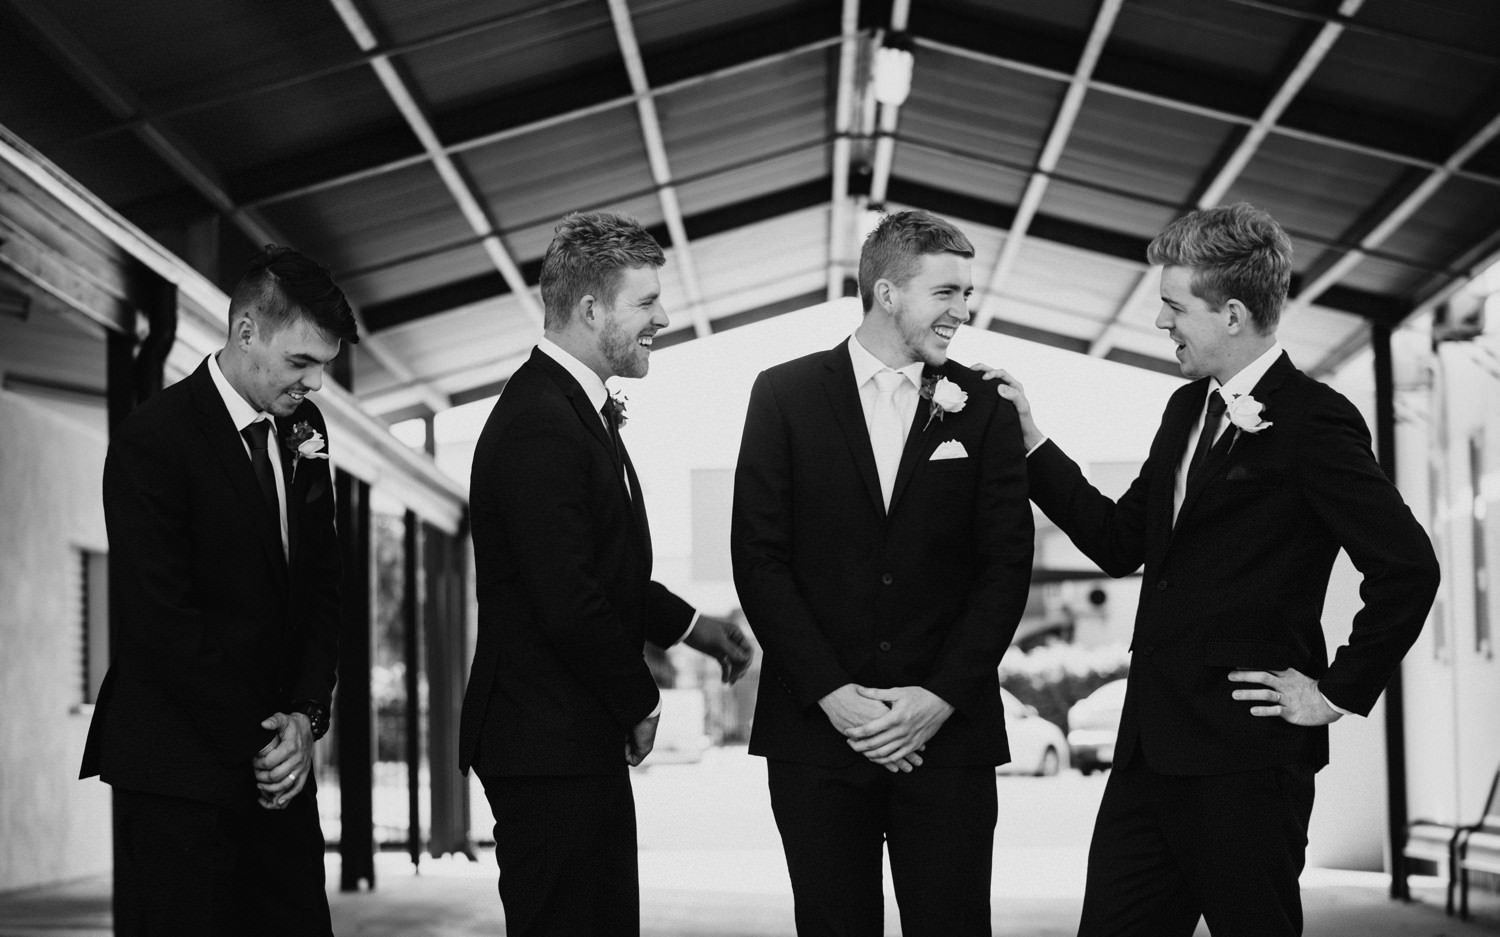 Grooms men talking before the ceremony